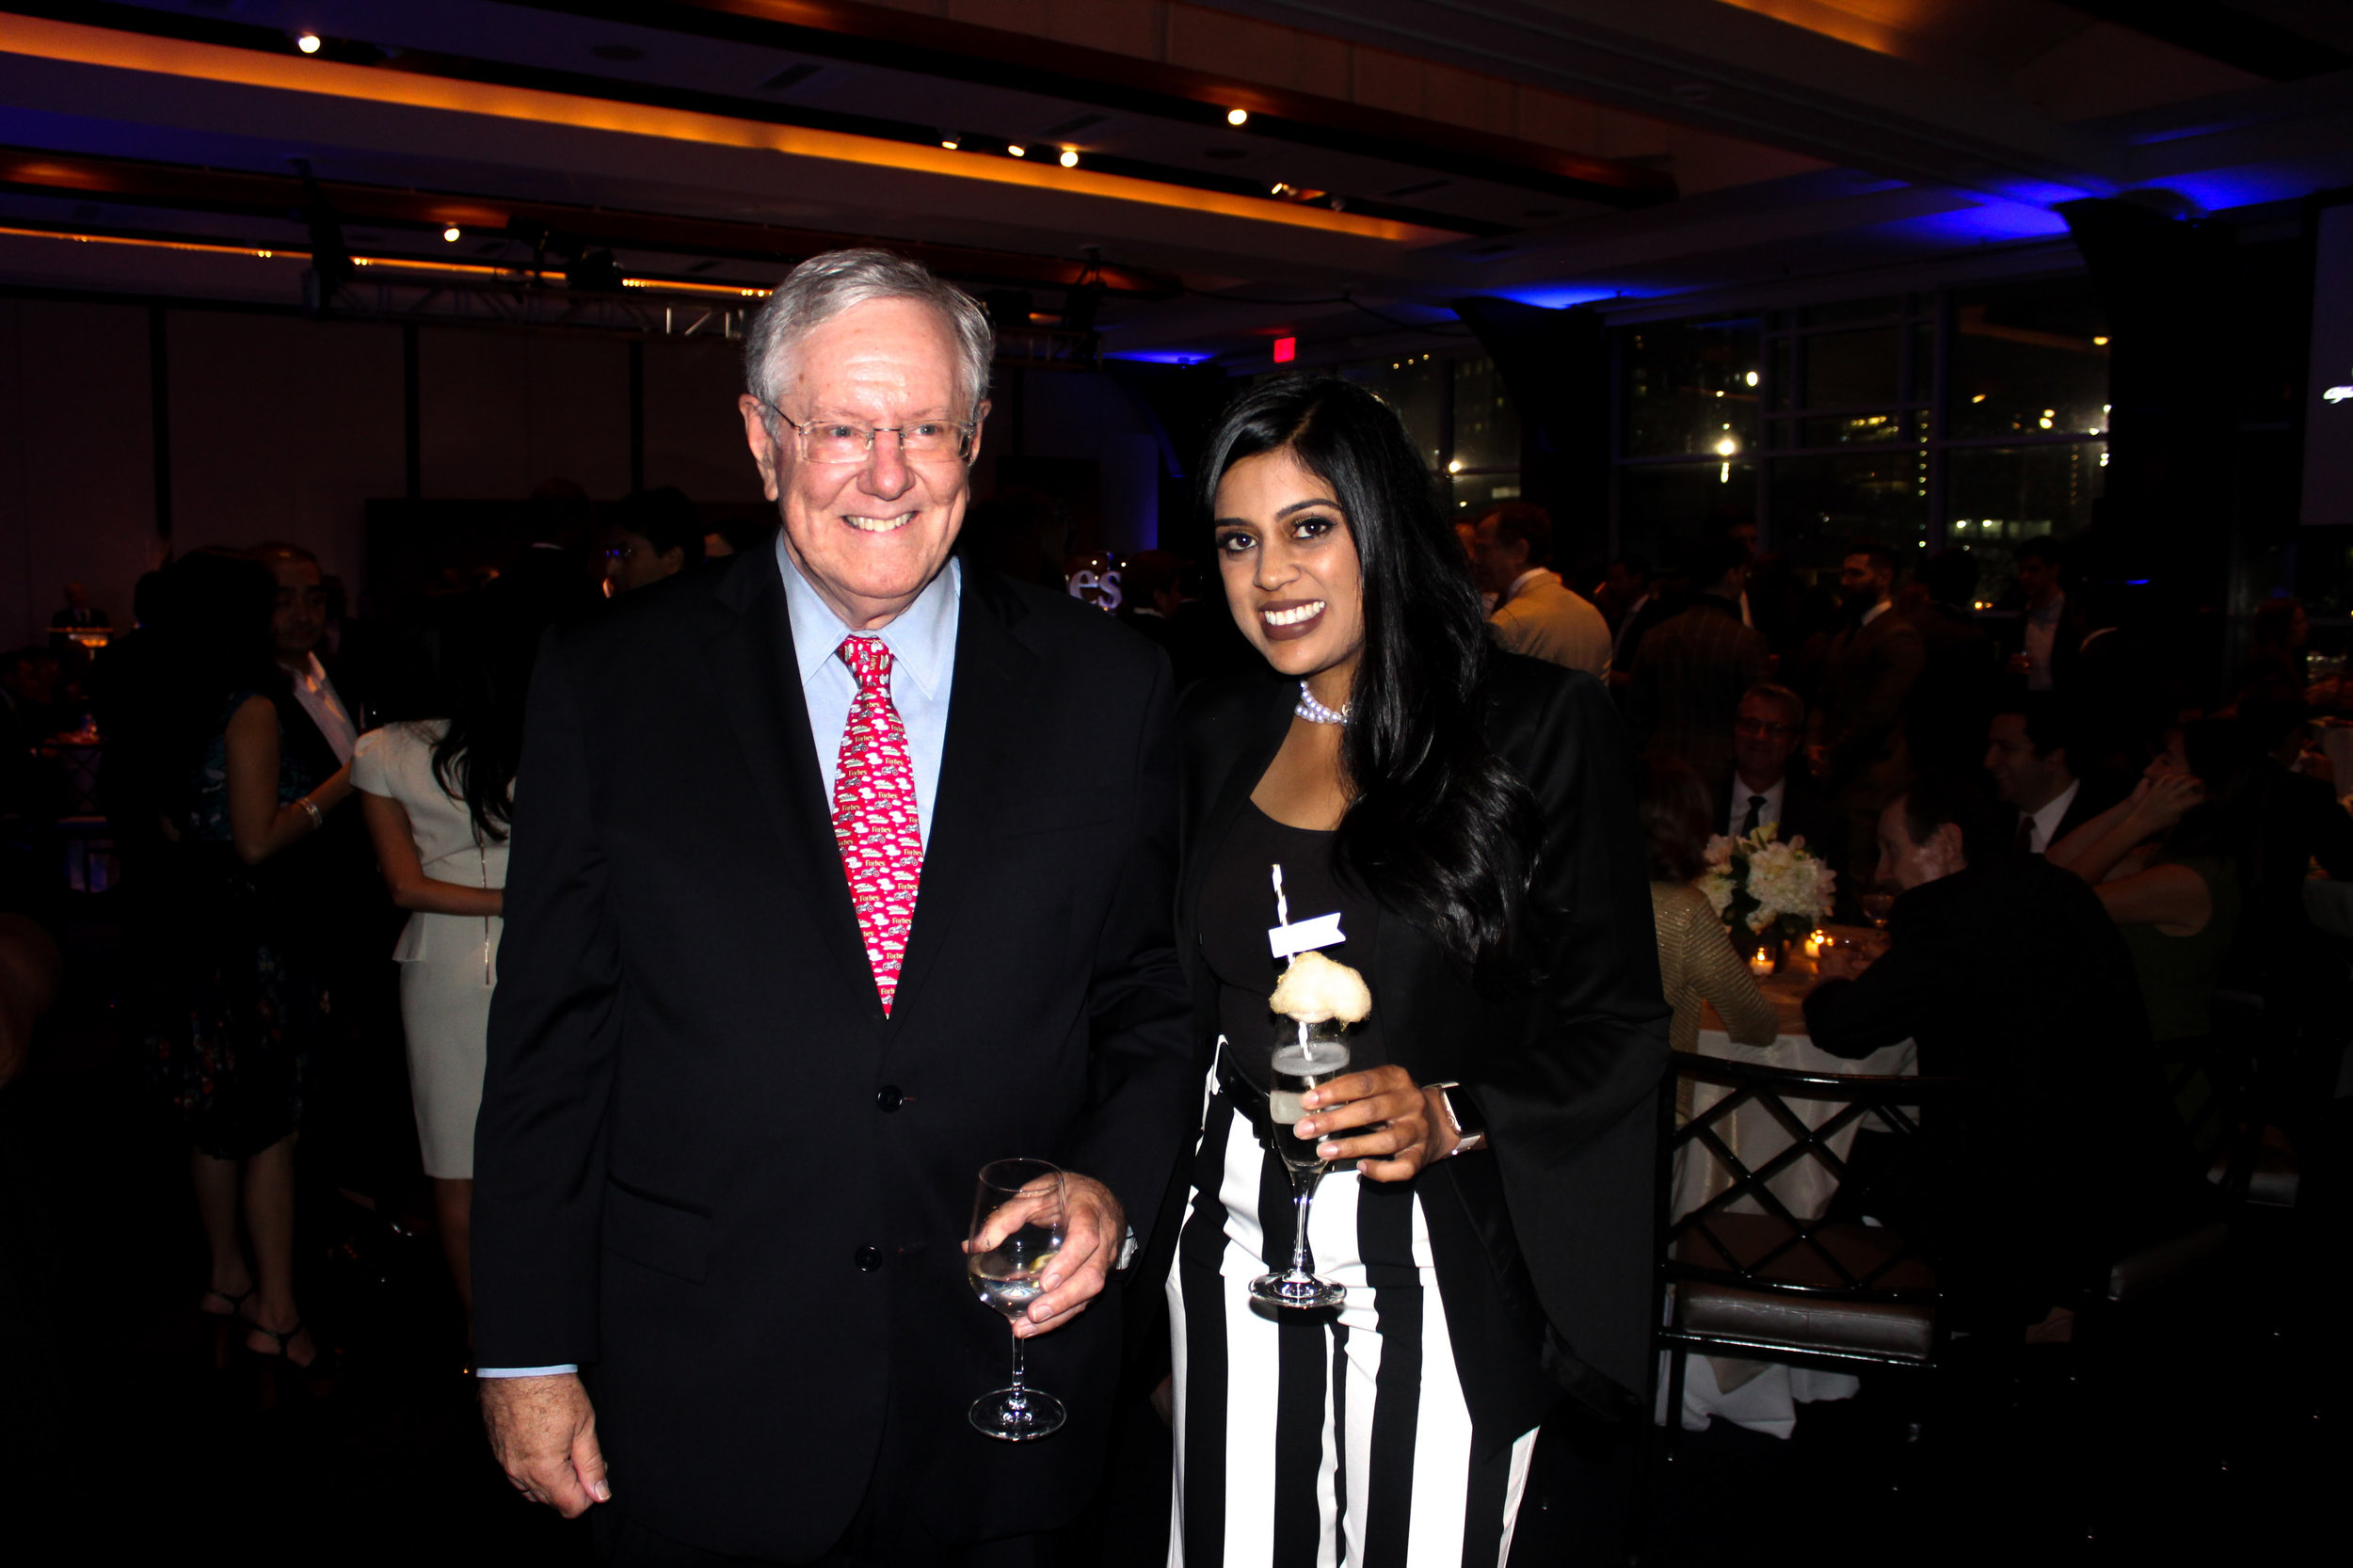 Make Your Life Sweeter Events - Yasmeen Tadia and Steve Forbes - Forbes 100 year Anniversary Party- Sugaire Organic Cotton Candy